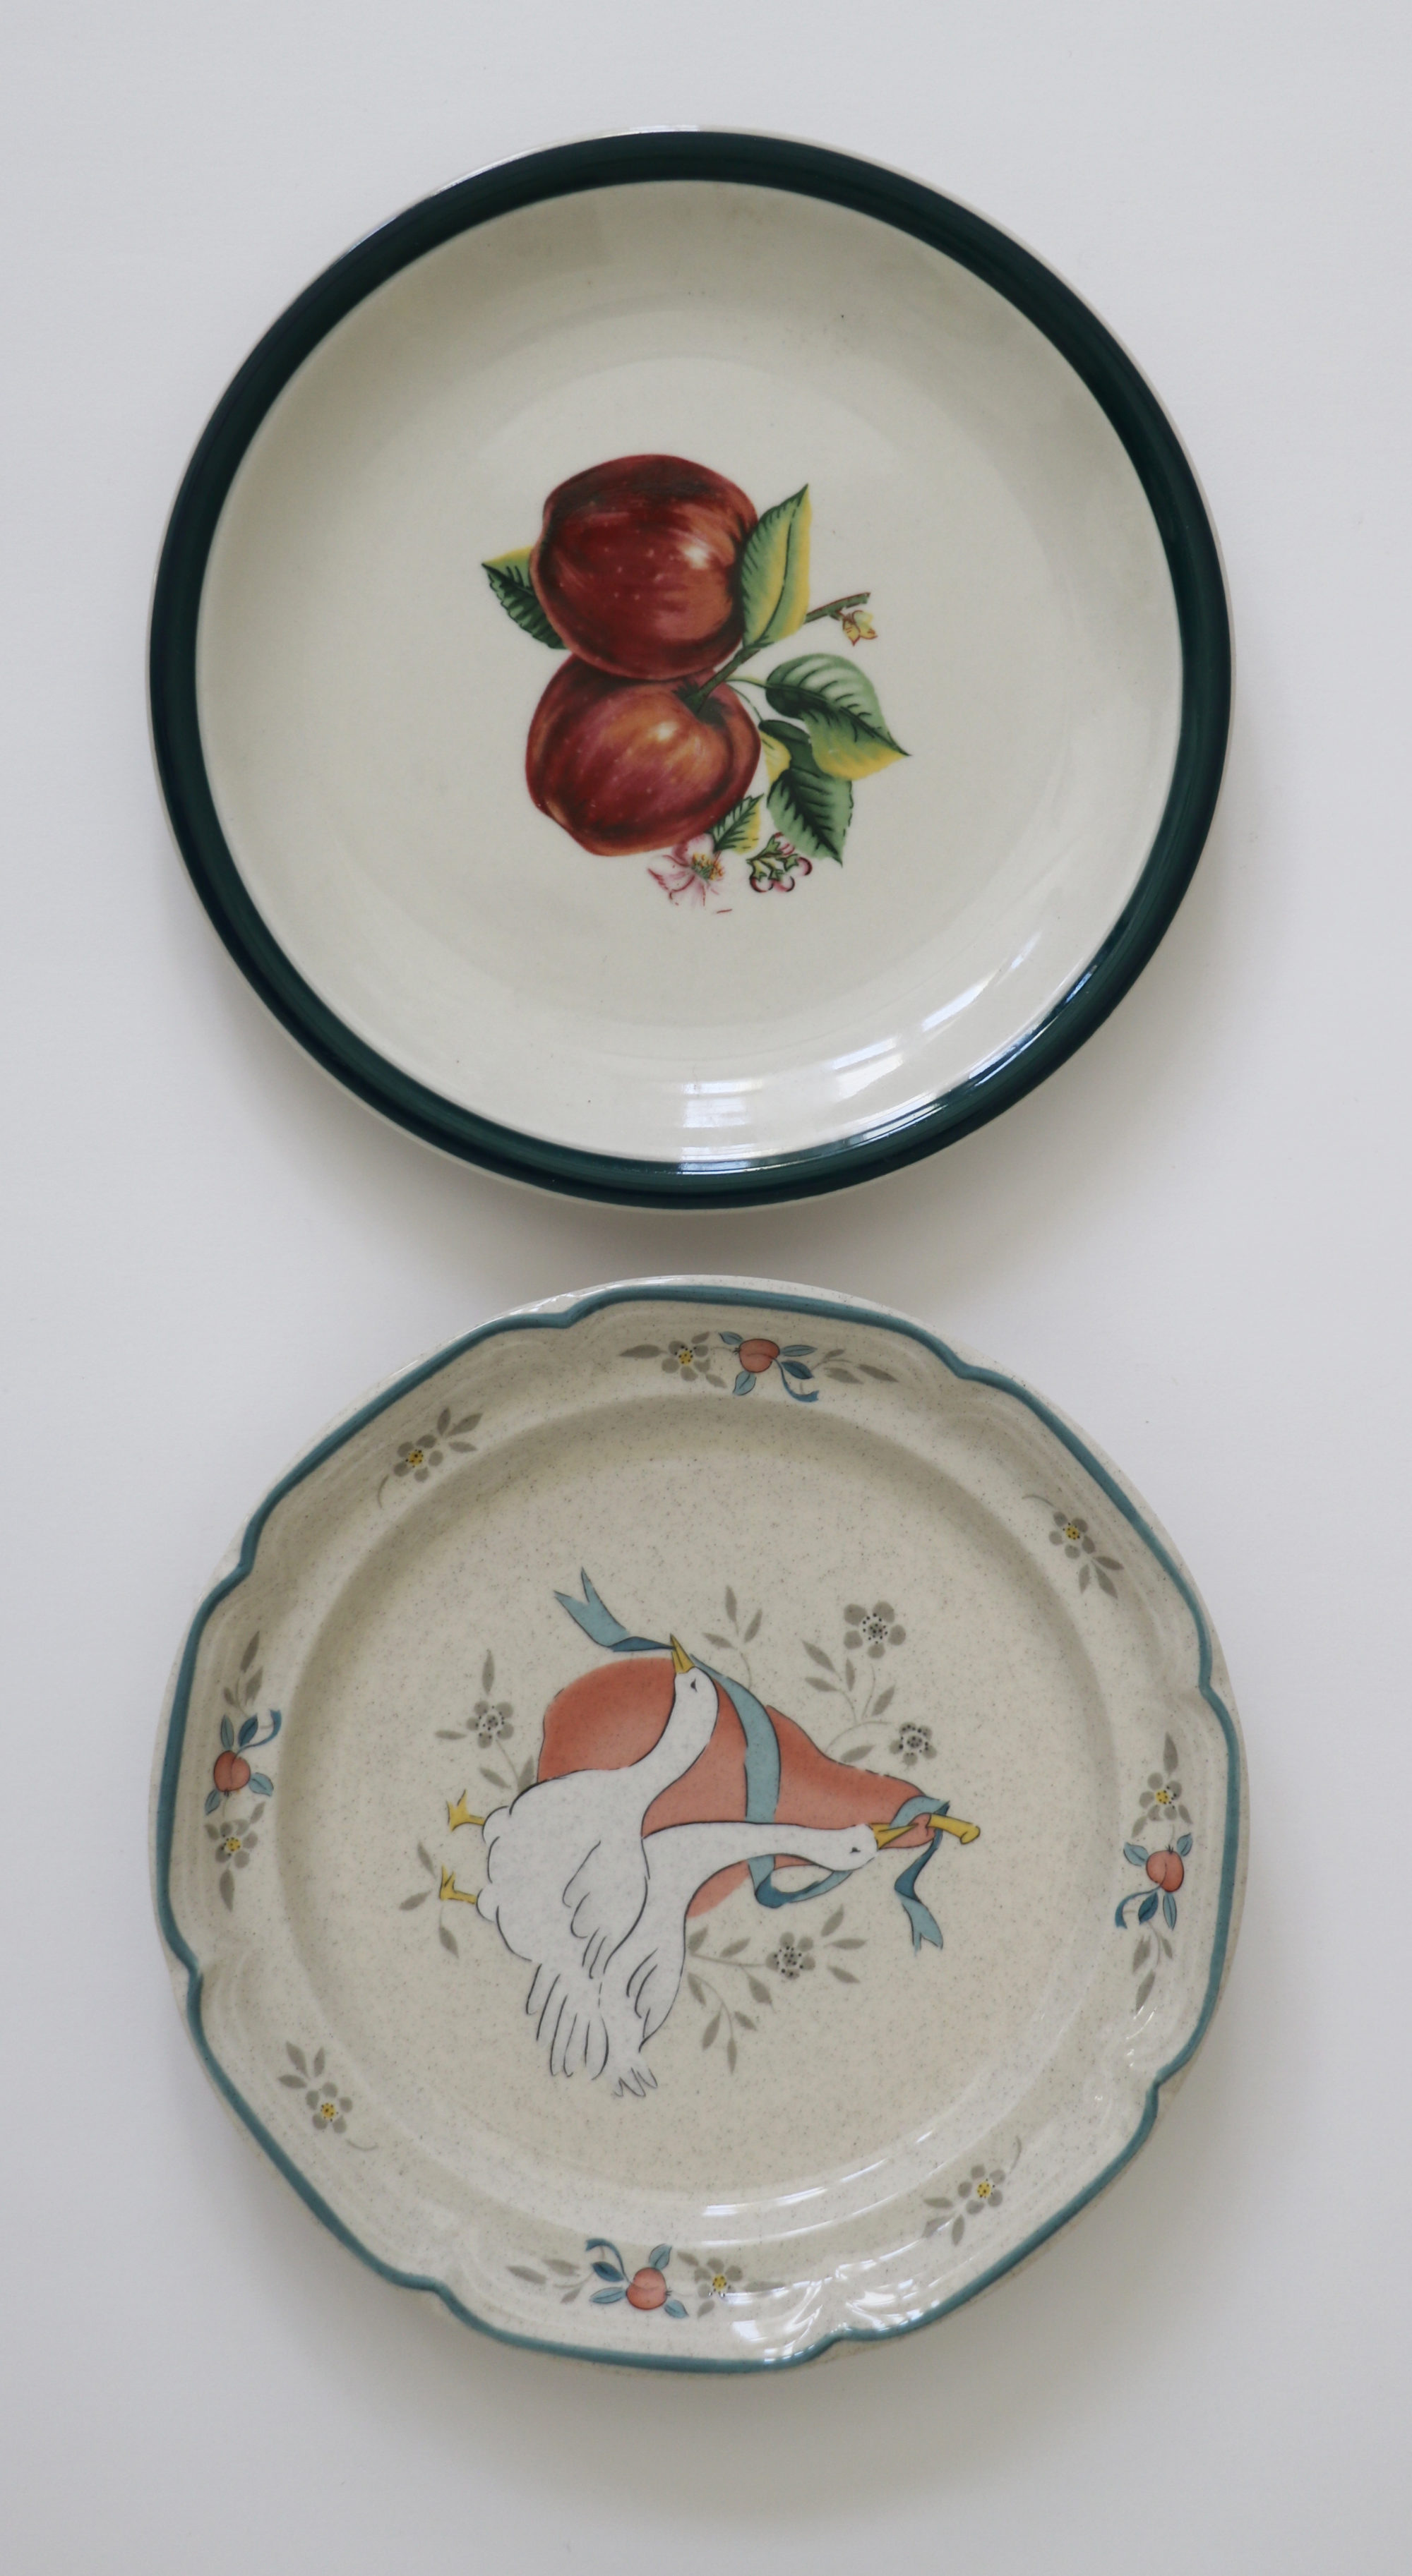 Creative uses for old plates | Sincerely, Sara D.